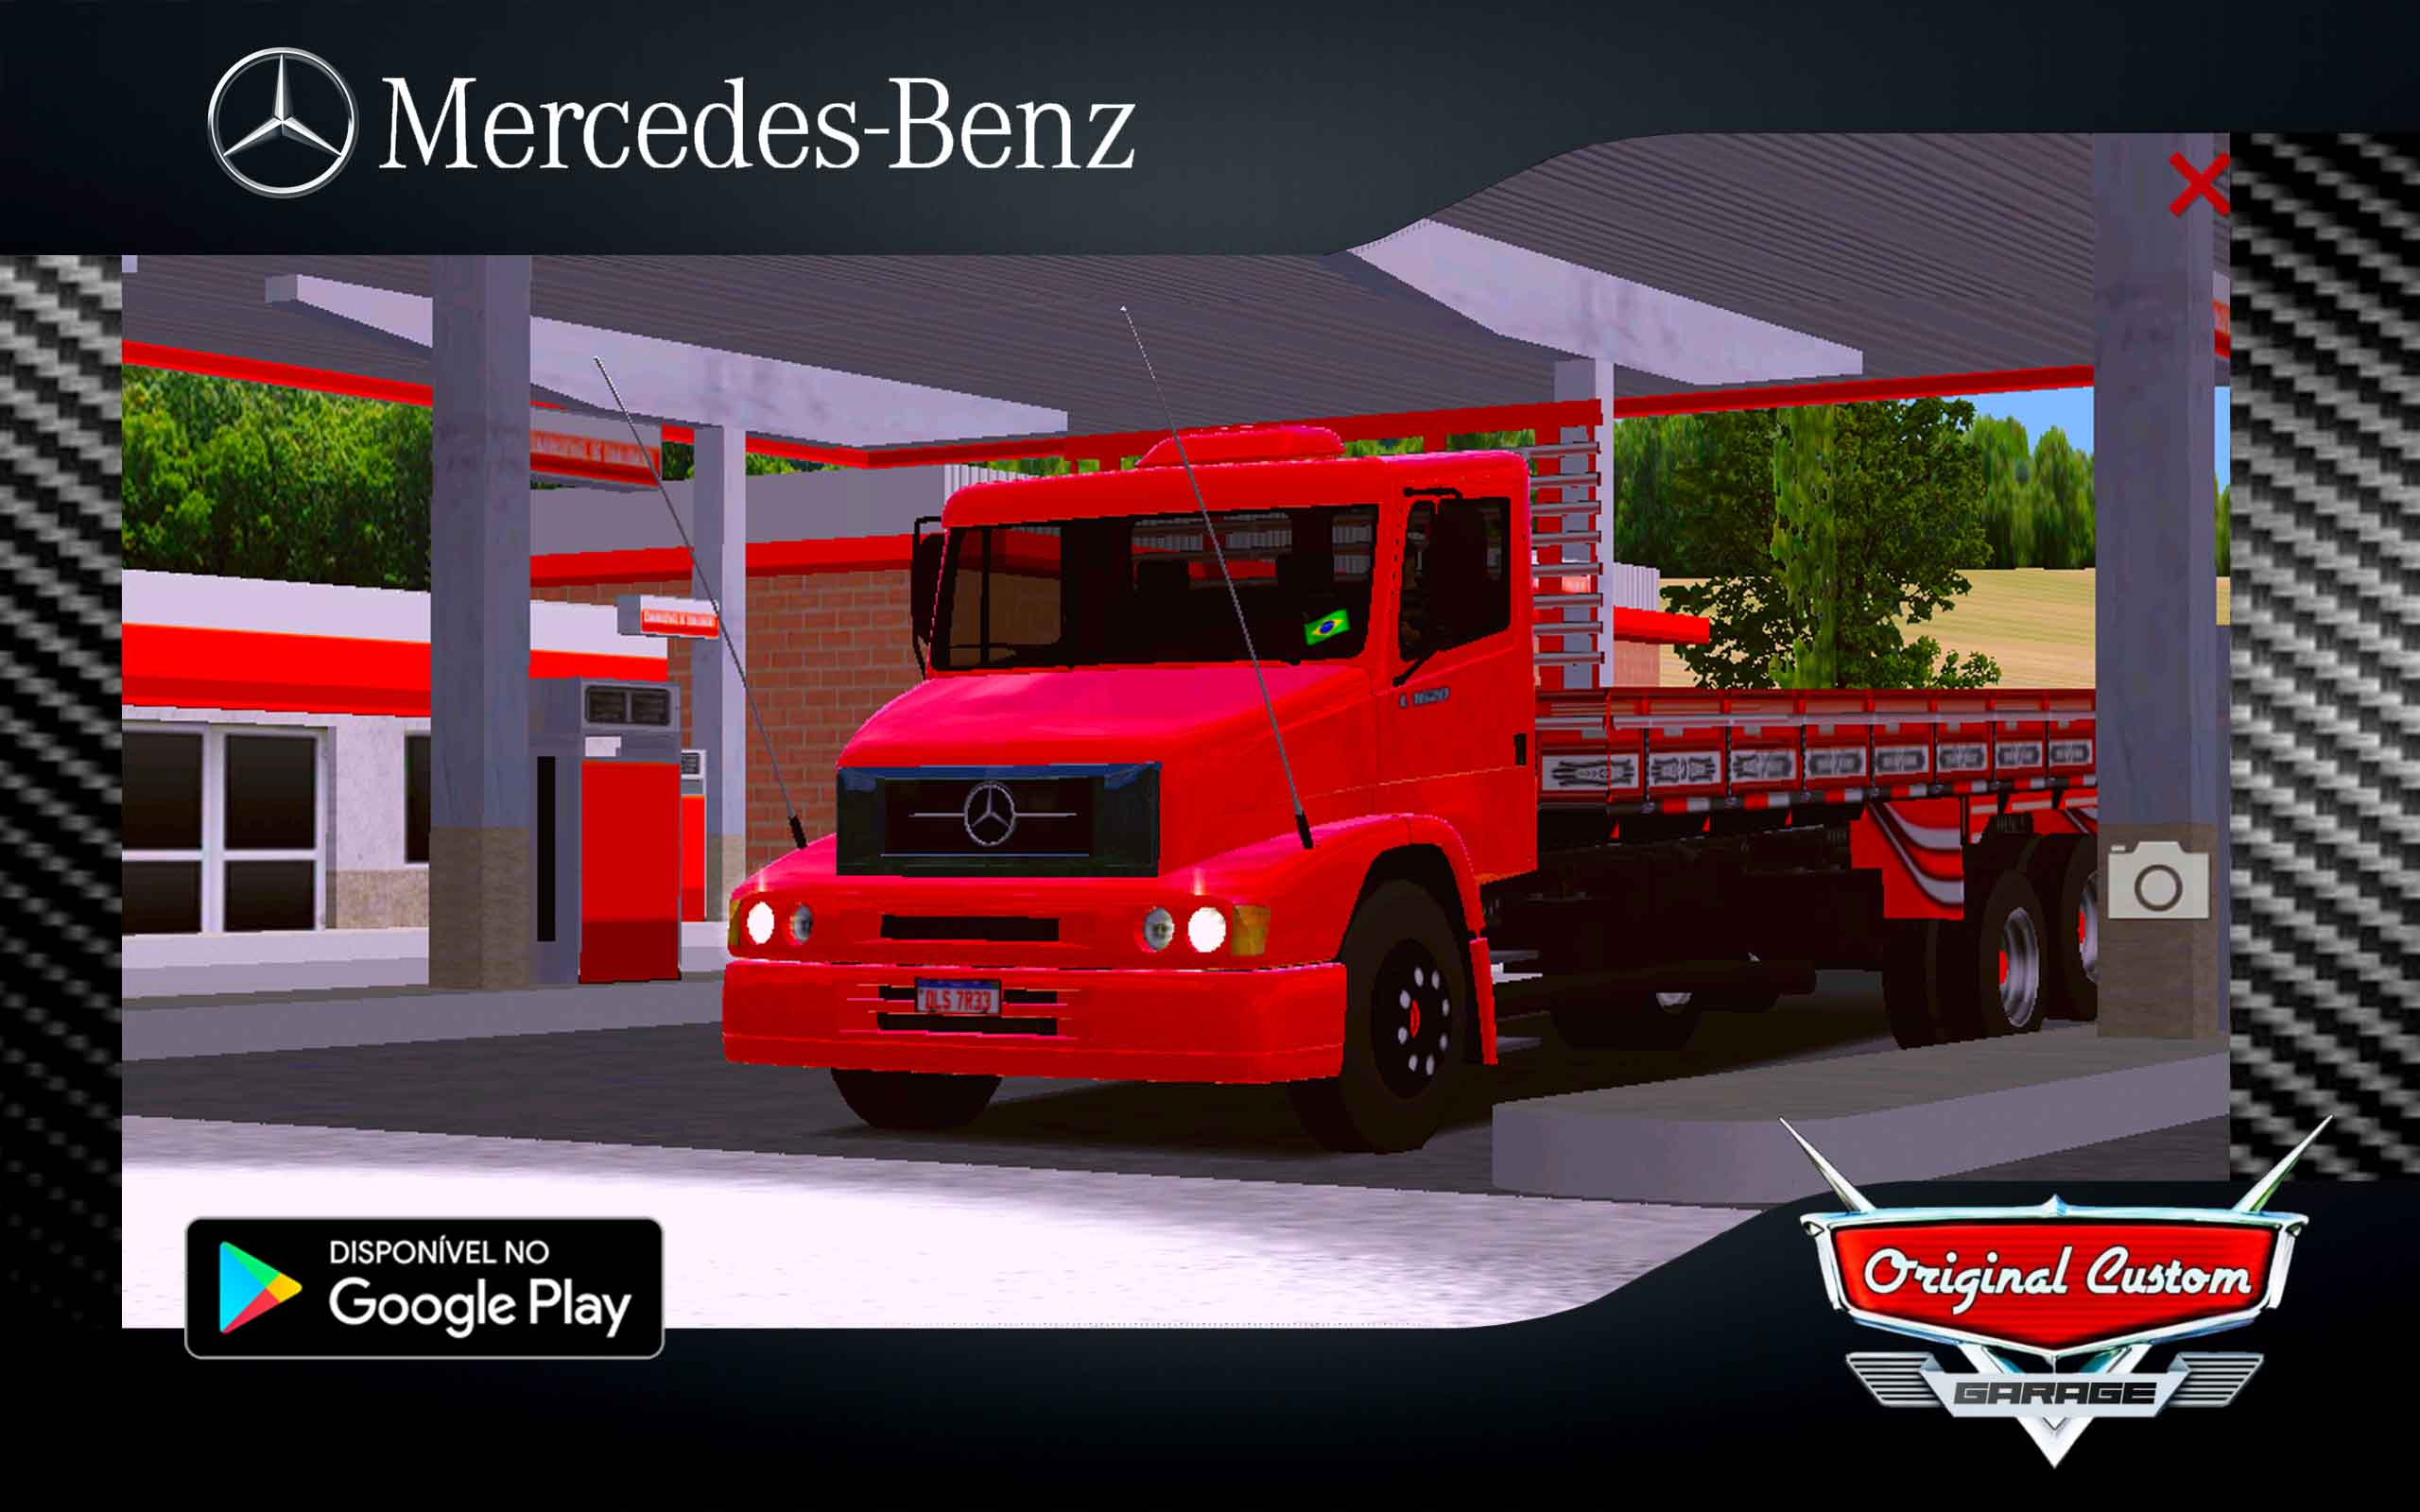 SKIN MERCEDES-BENZ MB-1620 SAPECADO do RAU - SKINS WTDS